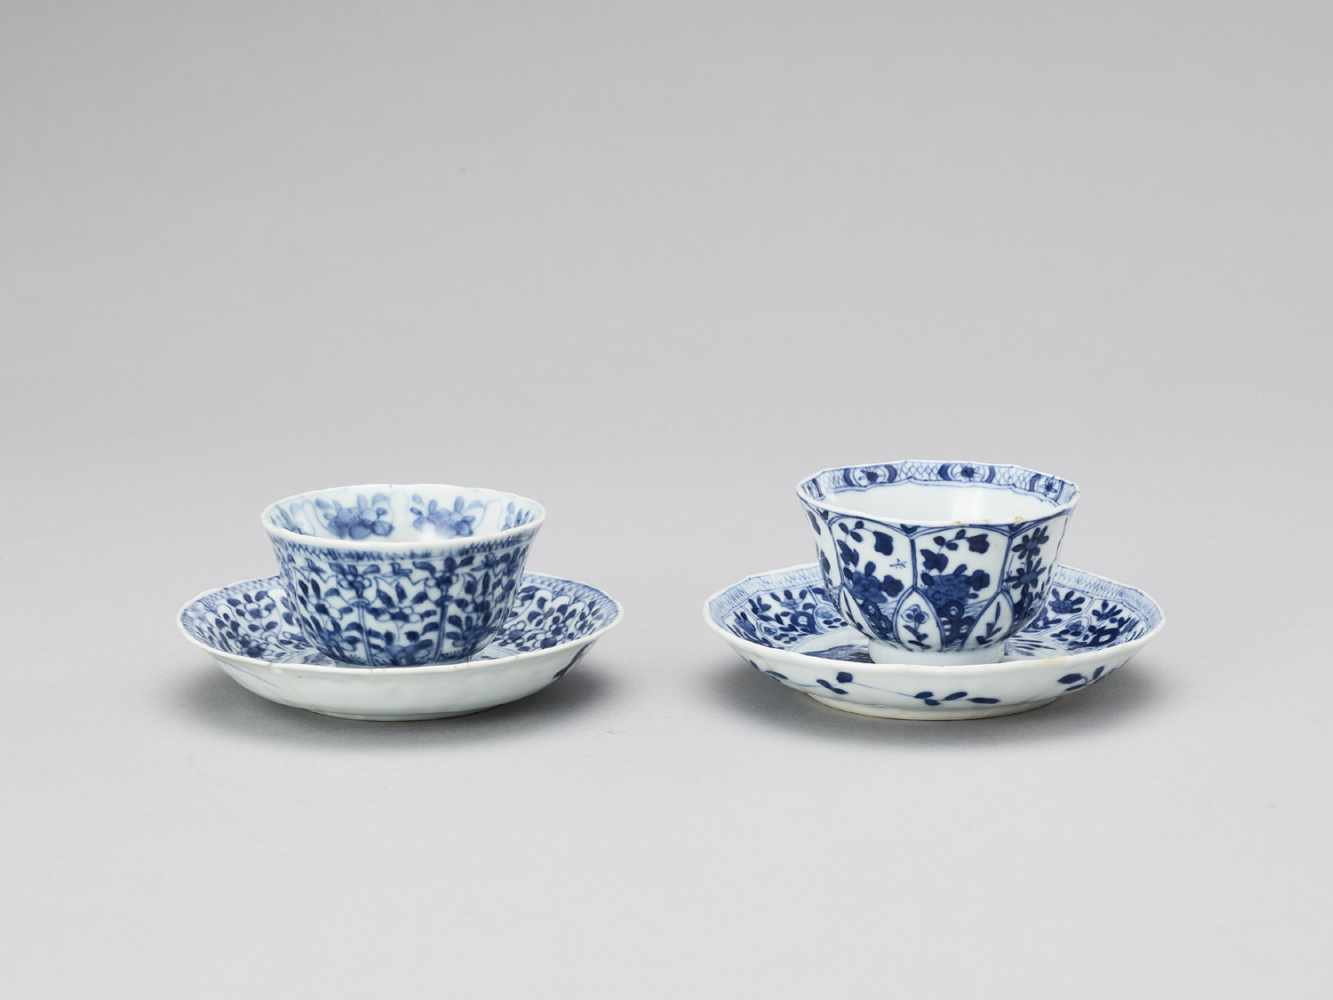 A PAIR OF BLUE AND WHITE PORCELAIN CUPS WITH MATCHING PLATES, KANGXI - Bild 2 aus 9